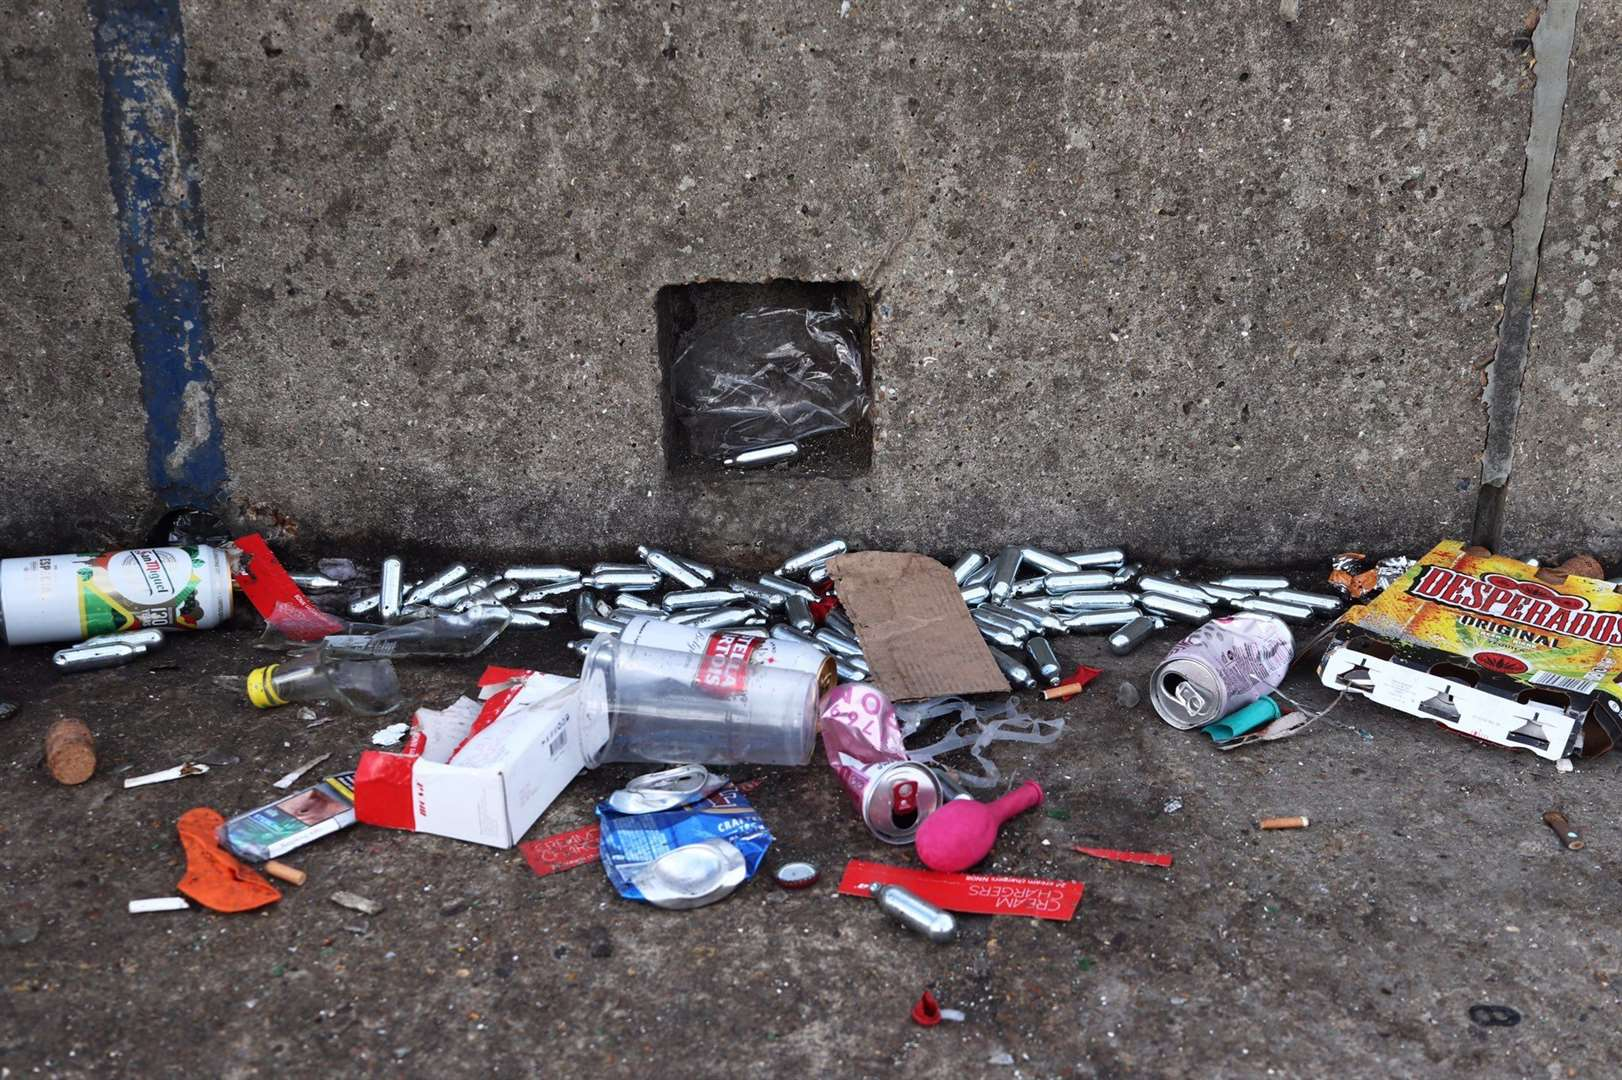 Laughing gas cannisters were strewn across the ground. Picture: Alex Hughes